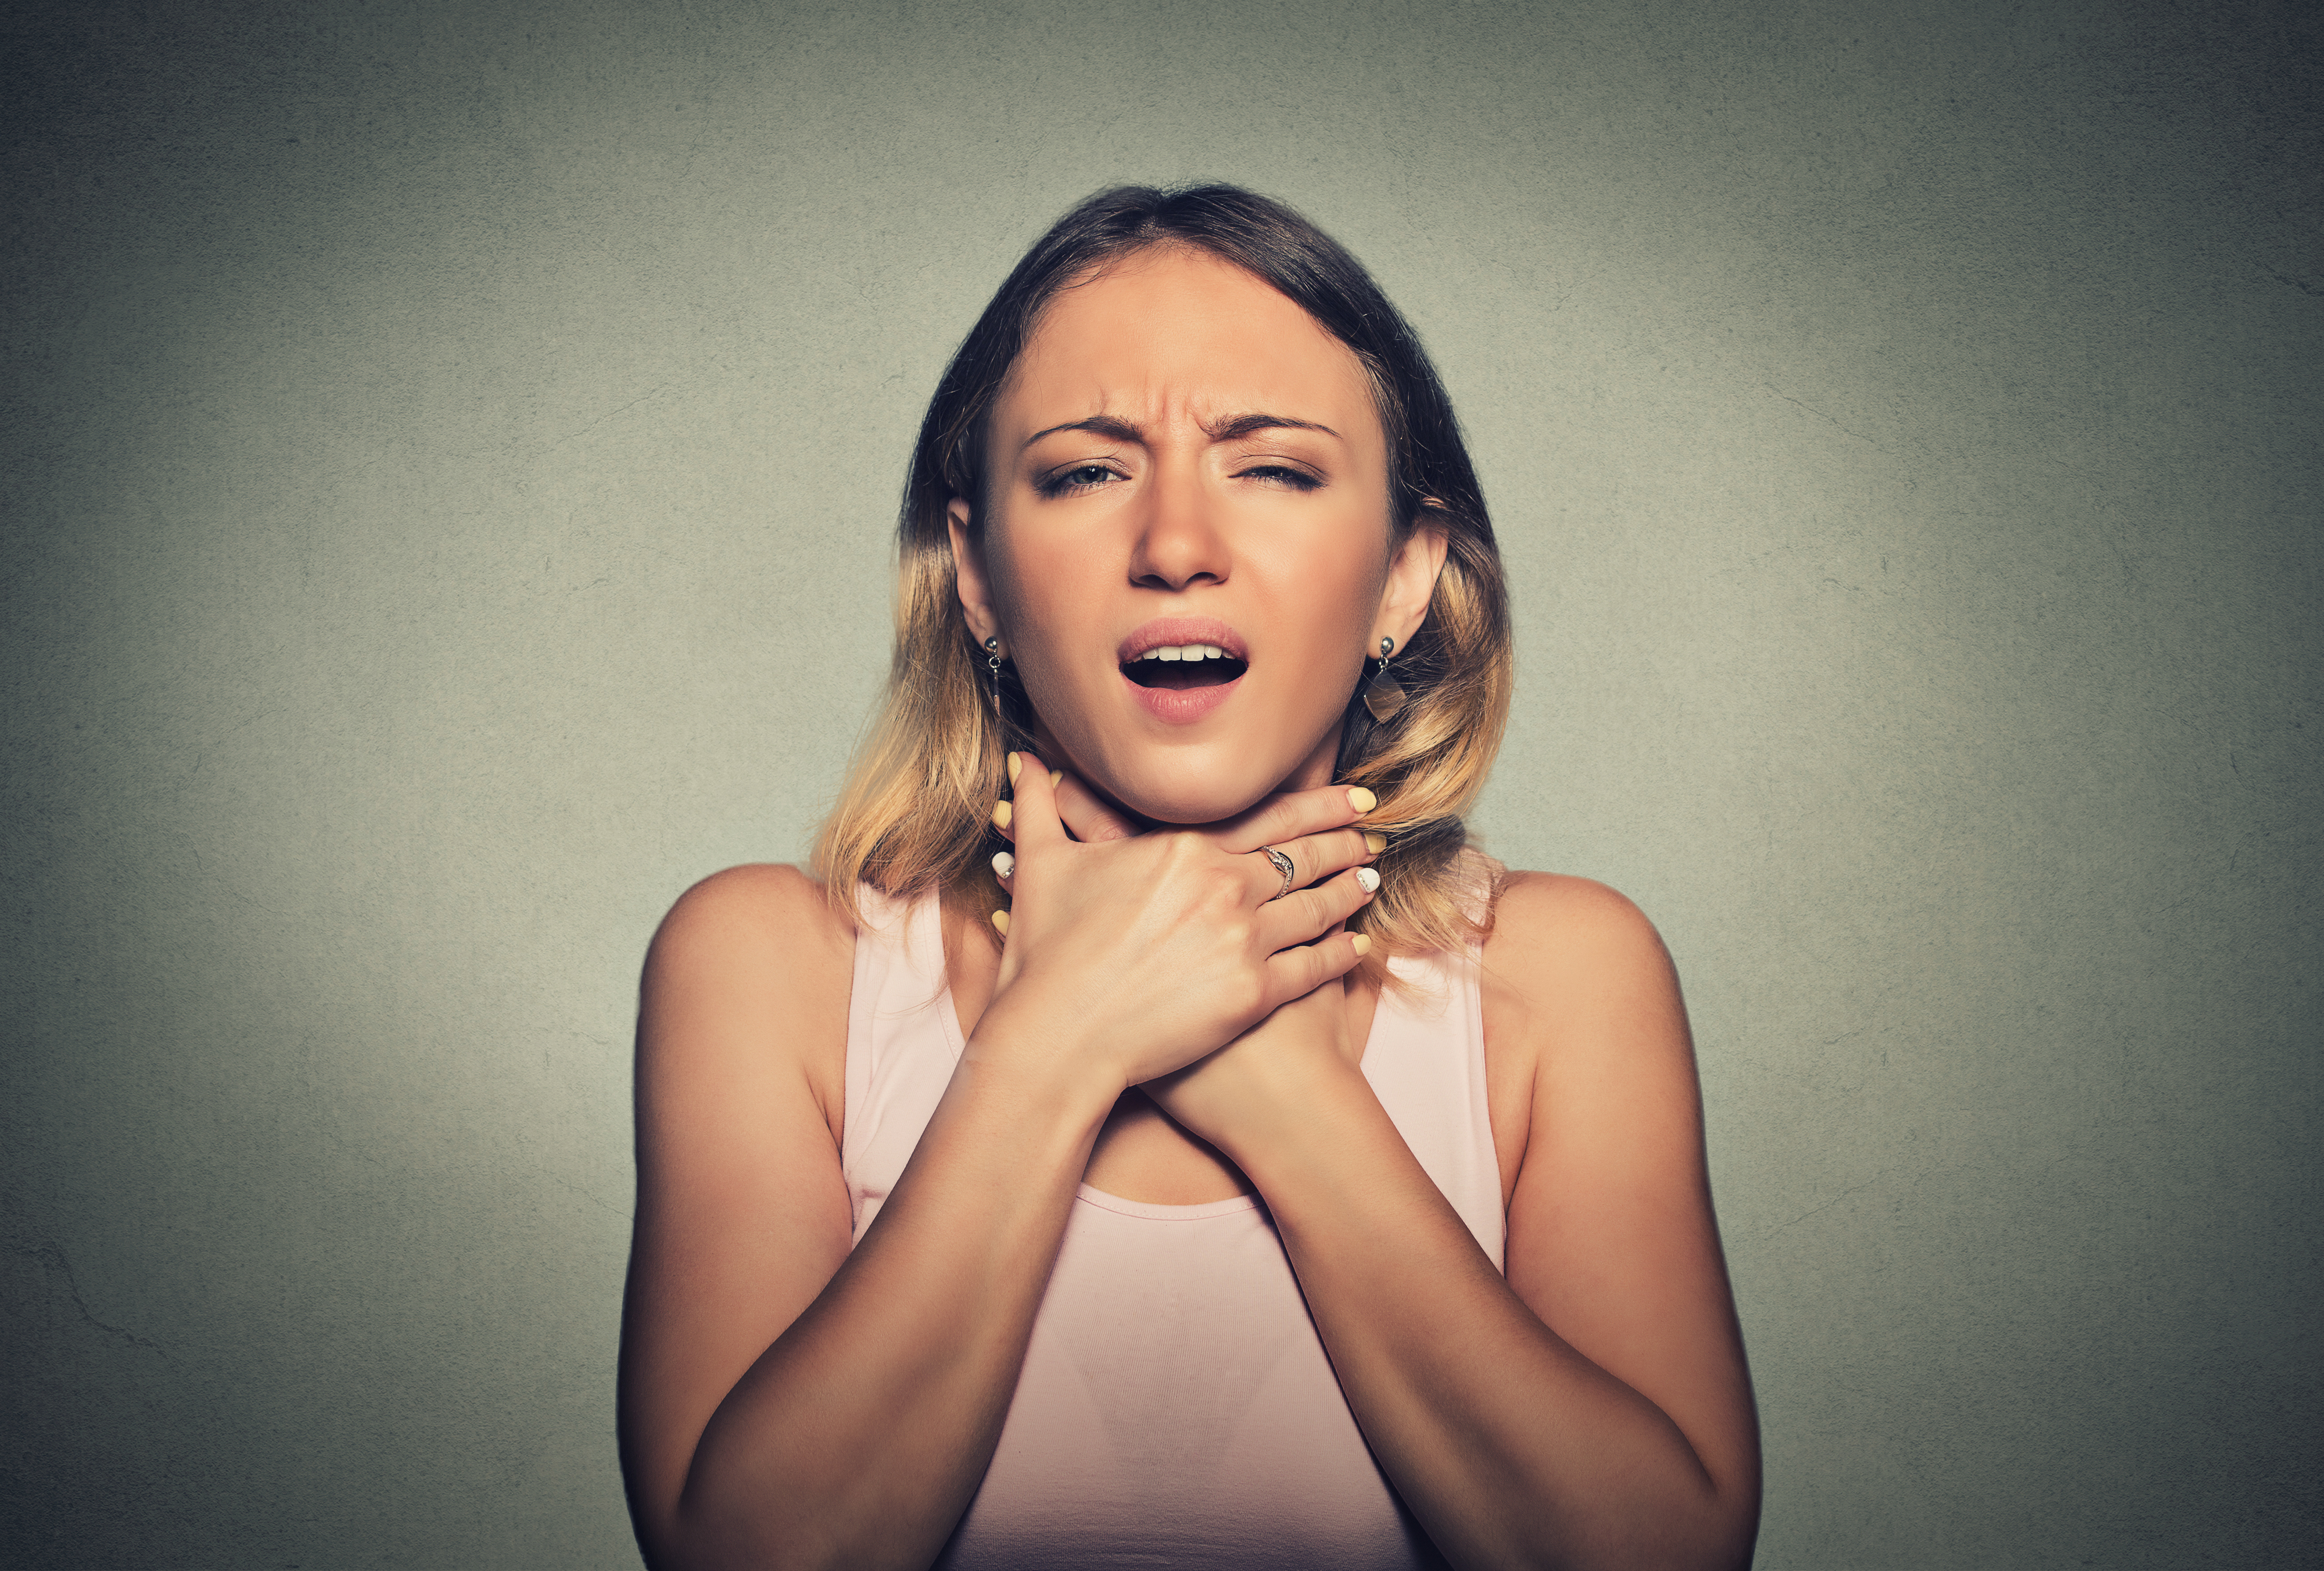 """This photo illustrates a young woman unable to breathe. According to the Mayo Clinic, one of the symptoms of anaphylaxis is constriction of the airways and a swollen tongue or throat, which can cause wheezing and trouble breathing. Its webapge states: """"Anaphylaxis symptoms usually occur within minutes of exposure to an allergen. Sometimes, however, anaphylaxis can occur a half-hour or longer after exposure. Anaphylaxis symptoms include: • Skin reactions, including hives along with itching, and flushed or pale skin (almost always present with anaphylaxis). • A feeling of warmth. • The sensation of a lump in your throat. • Constriction of airways (see above). • A weak and rapid pulse • Nausea, vomiting or diarrhea. • Dizziness or fainting."""" Mayo advises emergency medical help be sought immediately. """"If the person having the attack carries an epinephrine autoinjector (such as an EpiPen or EpiPen Jr),"""" it advises, """"give him or her a shot right away. Even if symptoms improve after an emergency epinephrine injection, a visit to the emergency department is still necessary to make sure symptoms don't return.""""   Photo by SLphotography/iStock/Getty Images Plus; St. George News"""